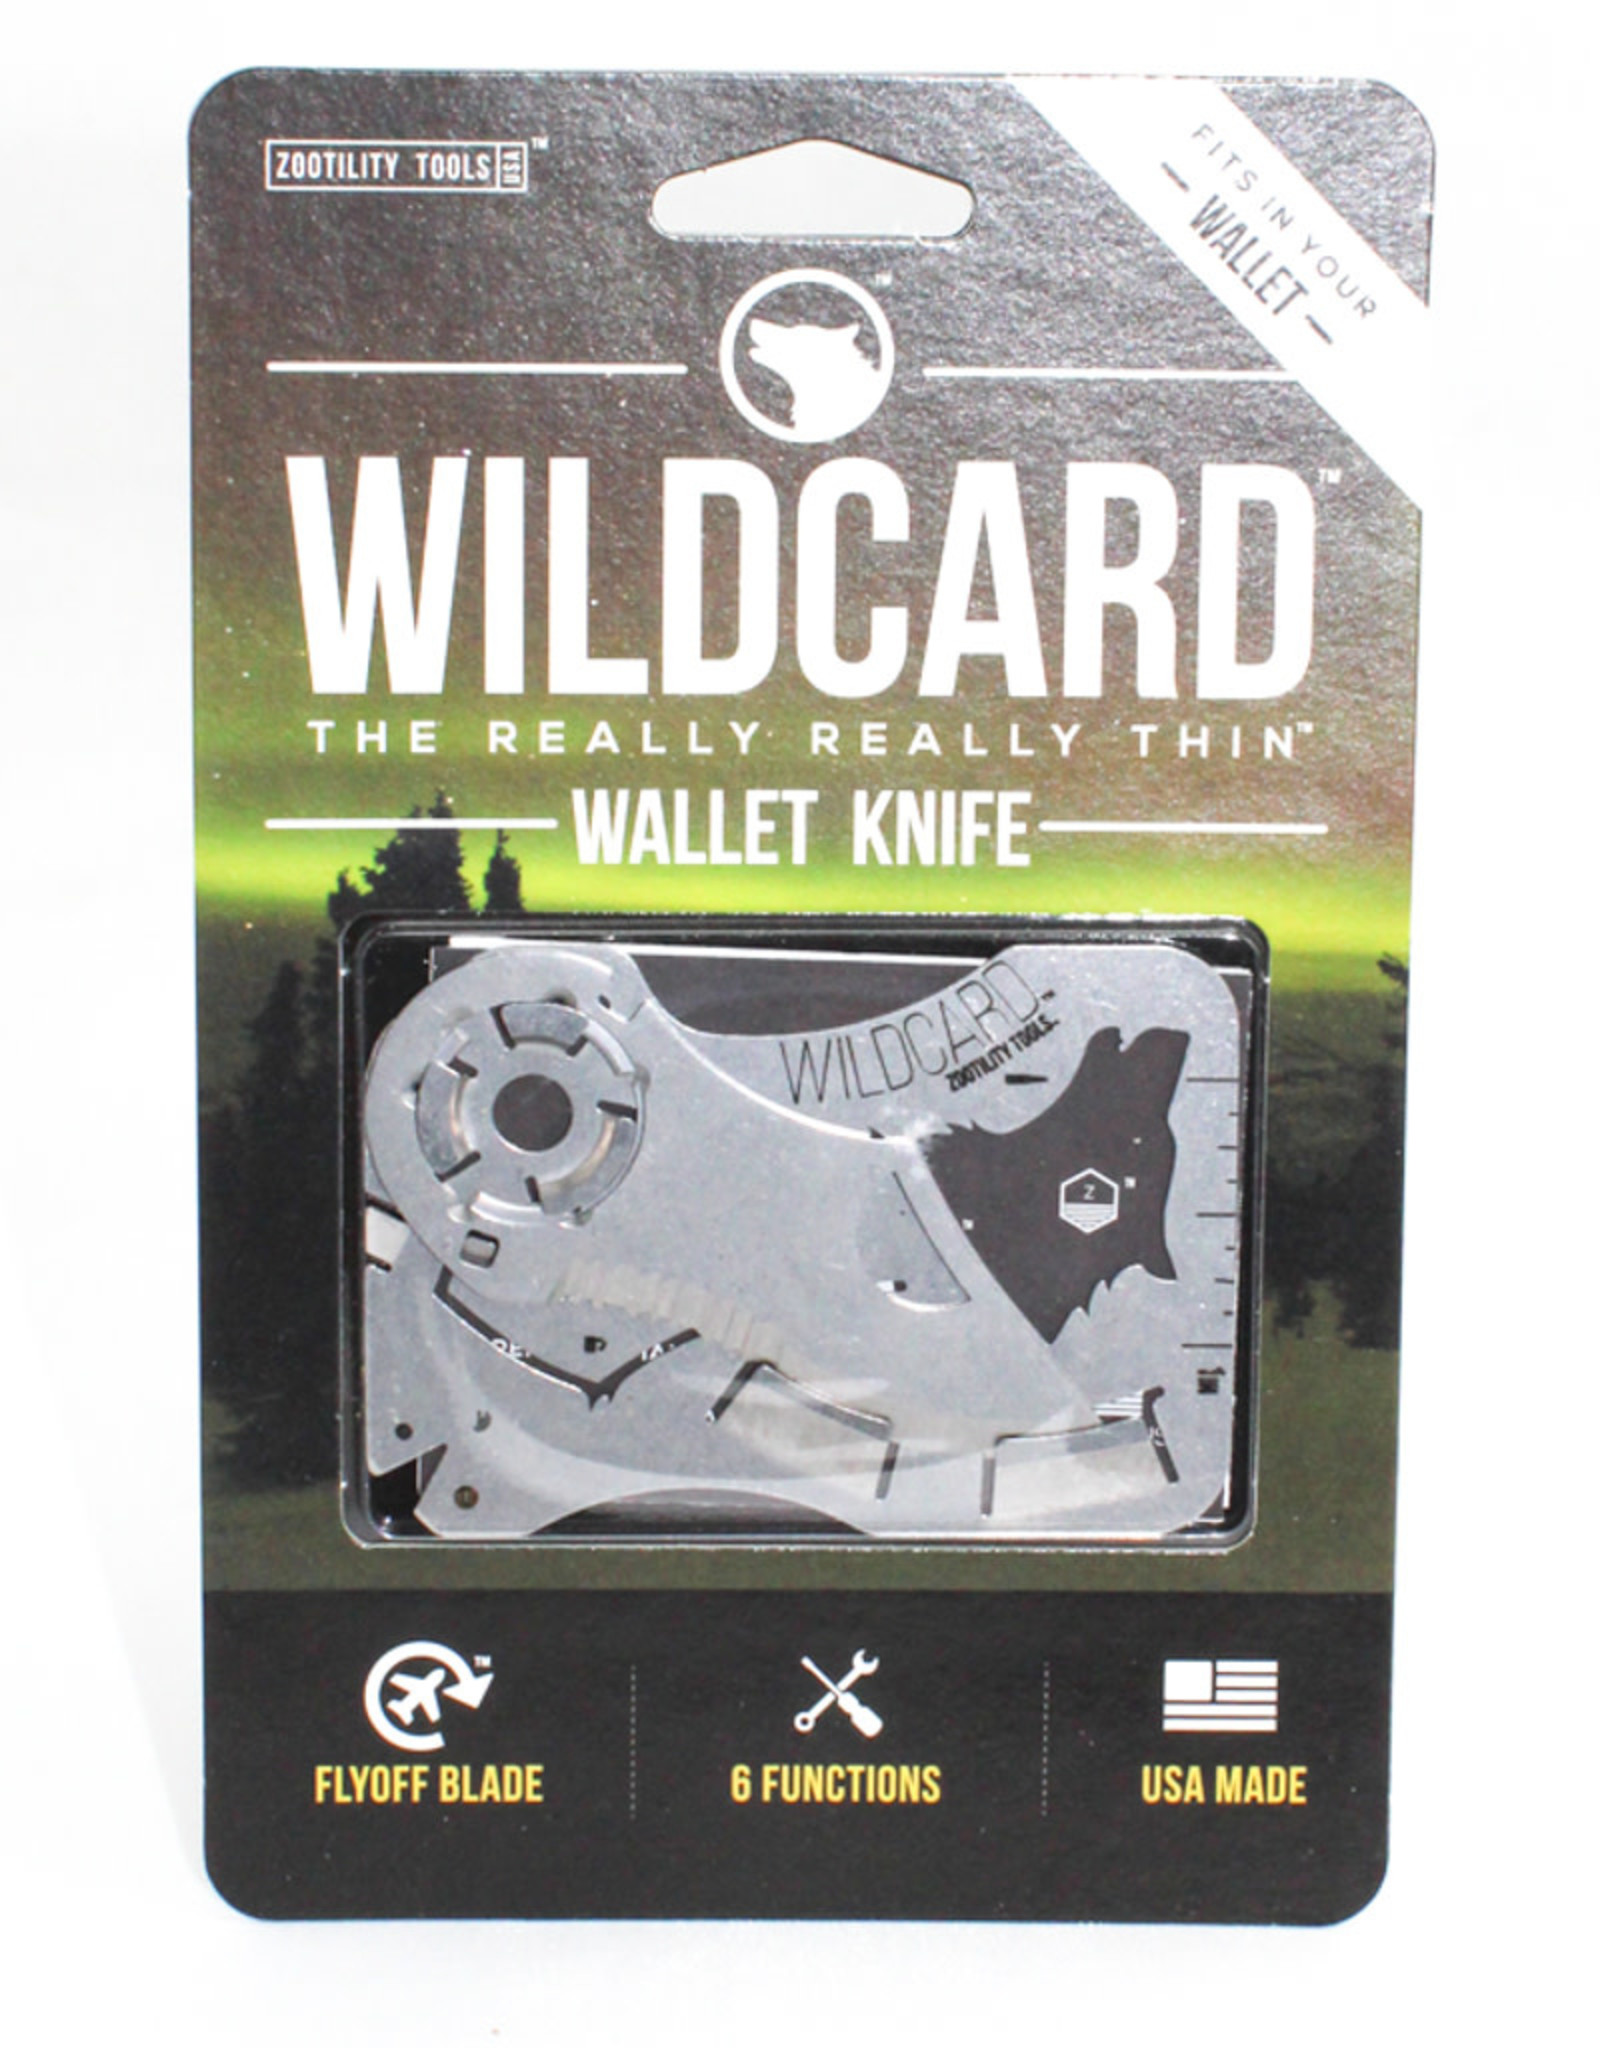 Zootility Tools Wildcard